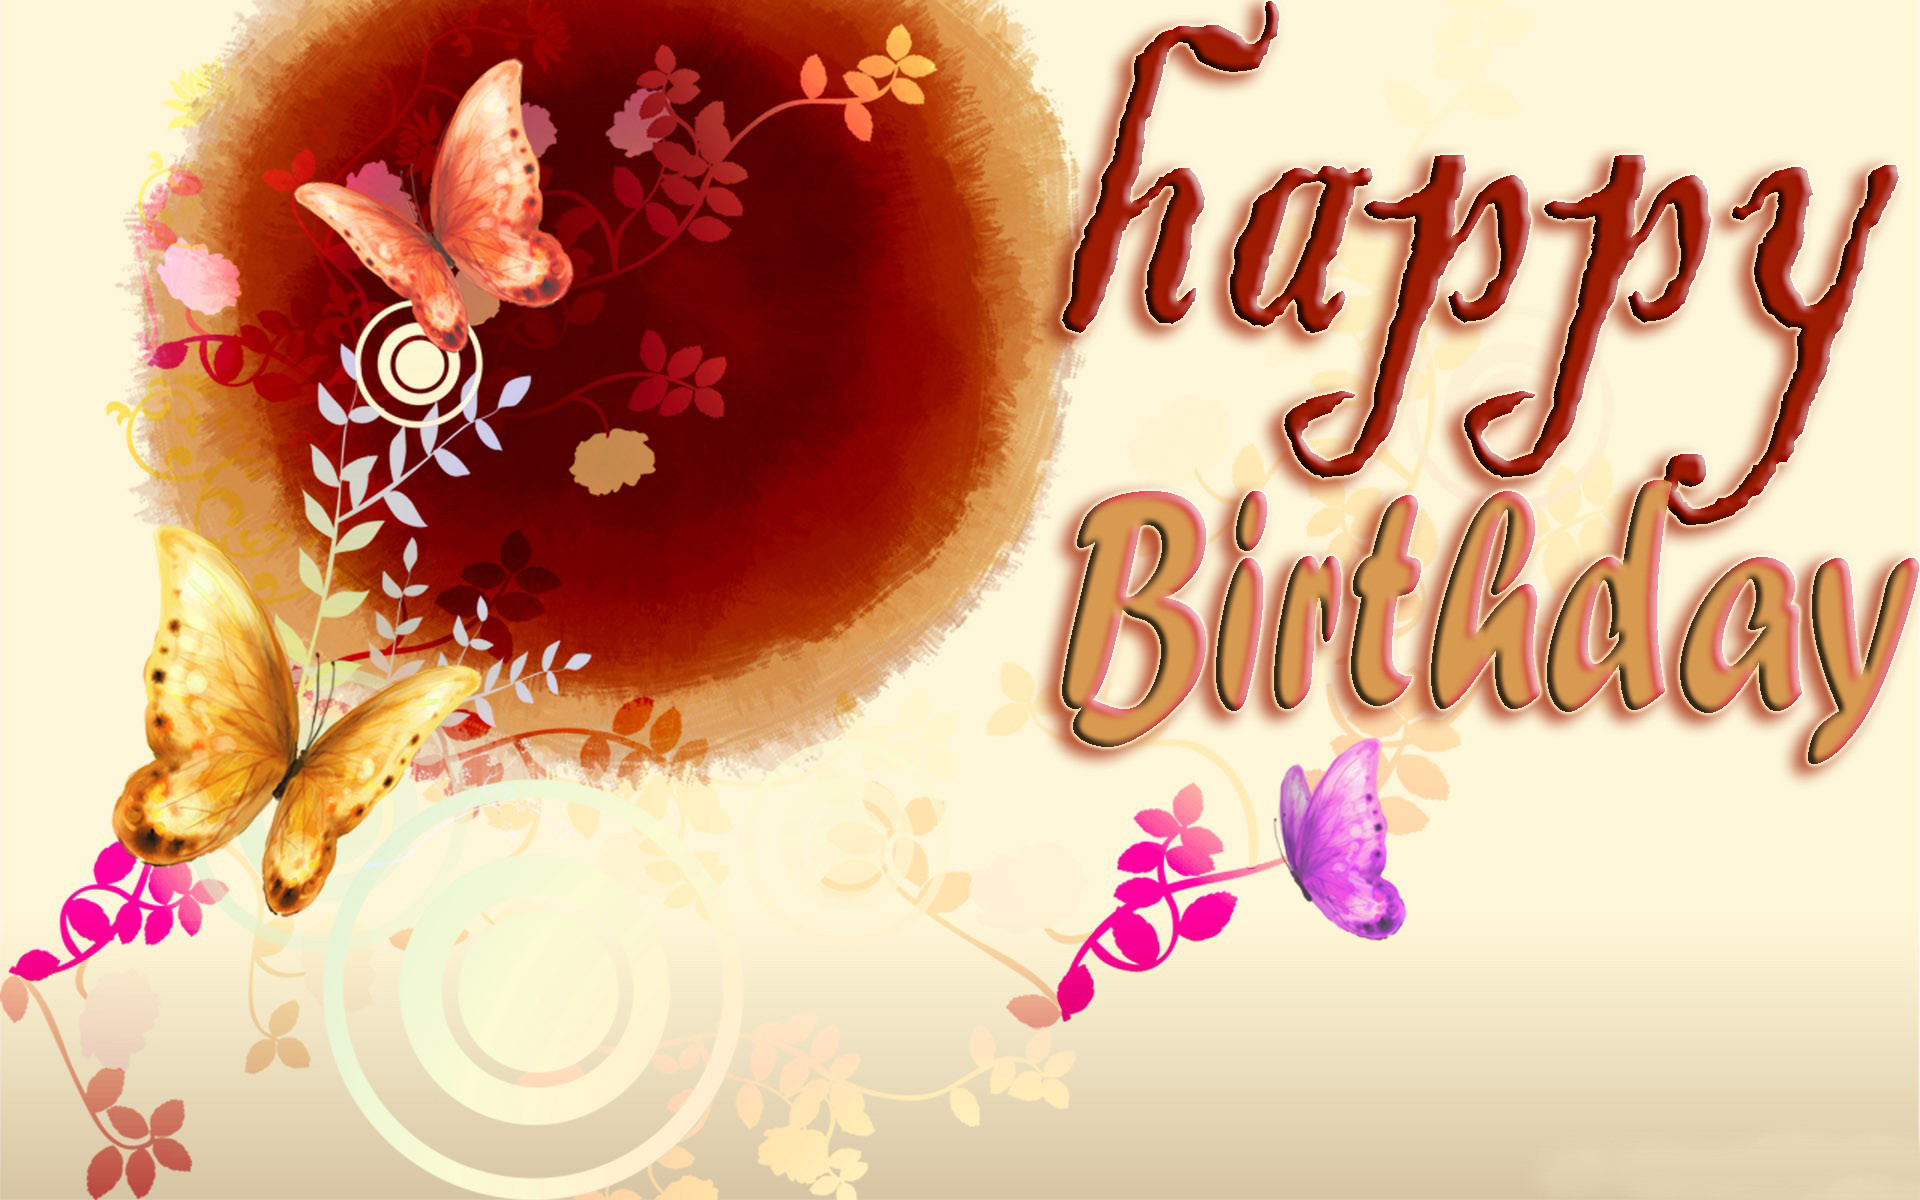 Best ideas about Meaningful Birthday Wishes . Save or Pin Great and Meaningful Birthday Wishes That Can Make Your Now.